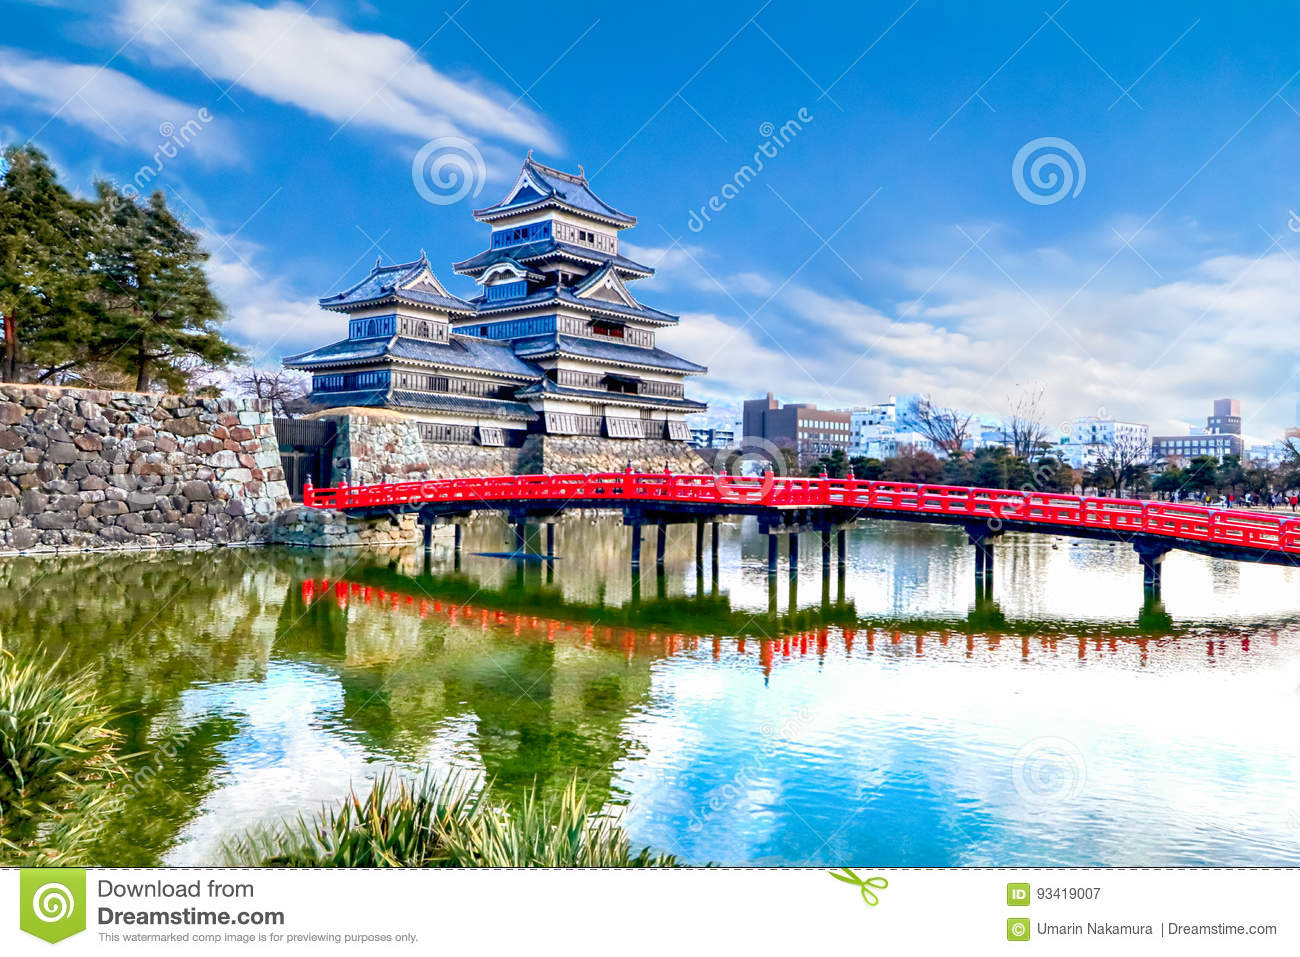 Matsumoto castle against with red wooden bridge over the canal i